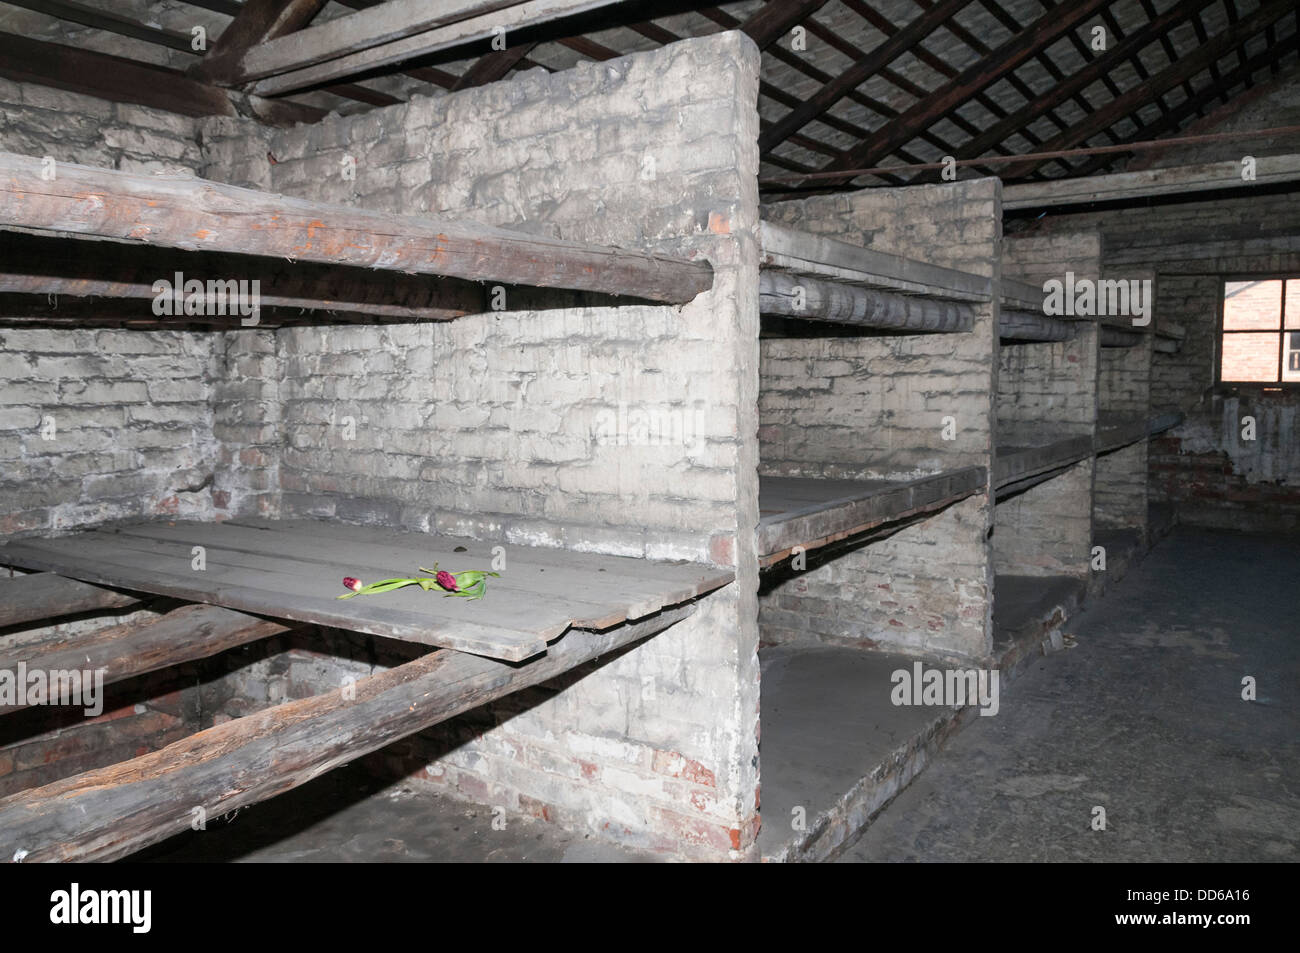 Where inmates slept in Auschwitz concentration camp. - Stock Image